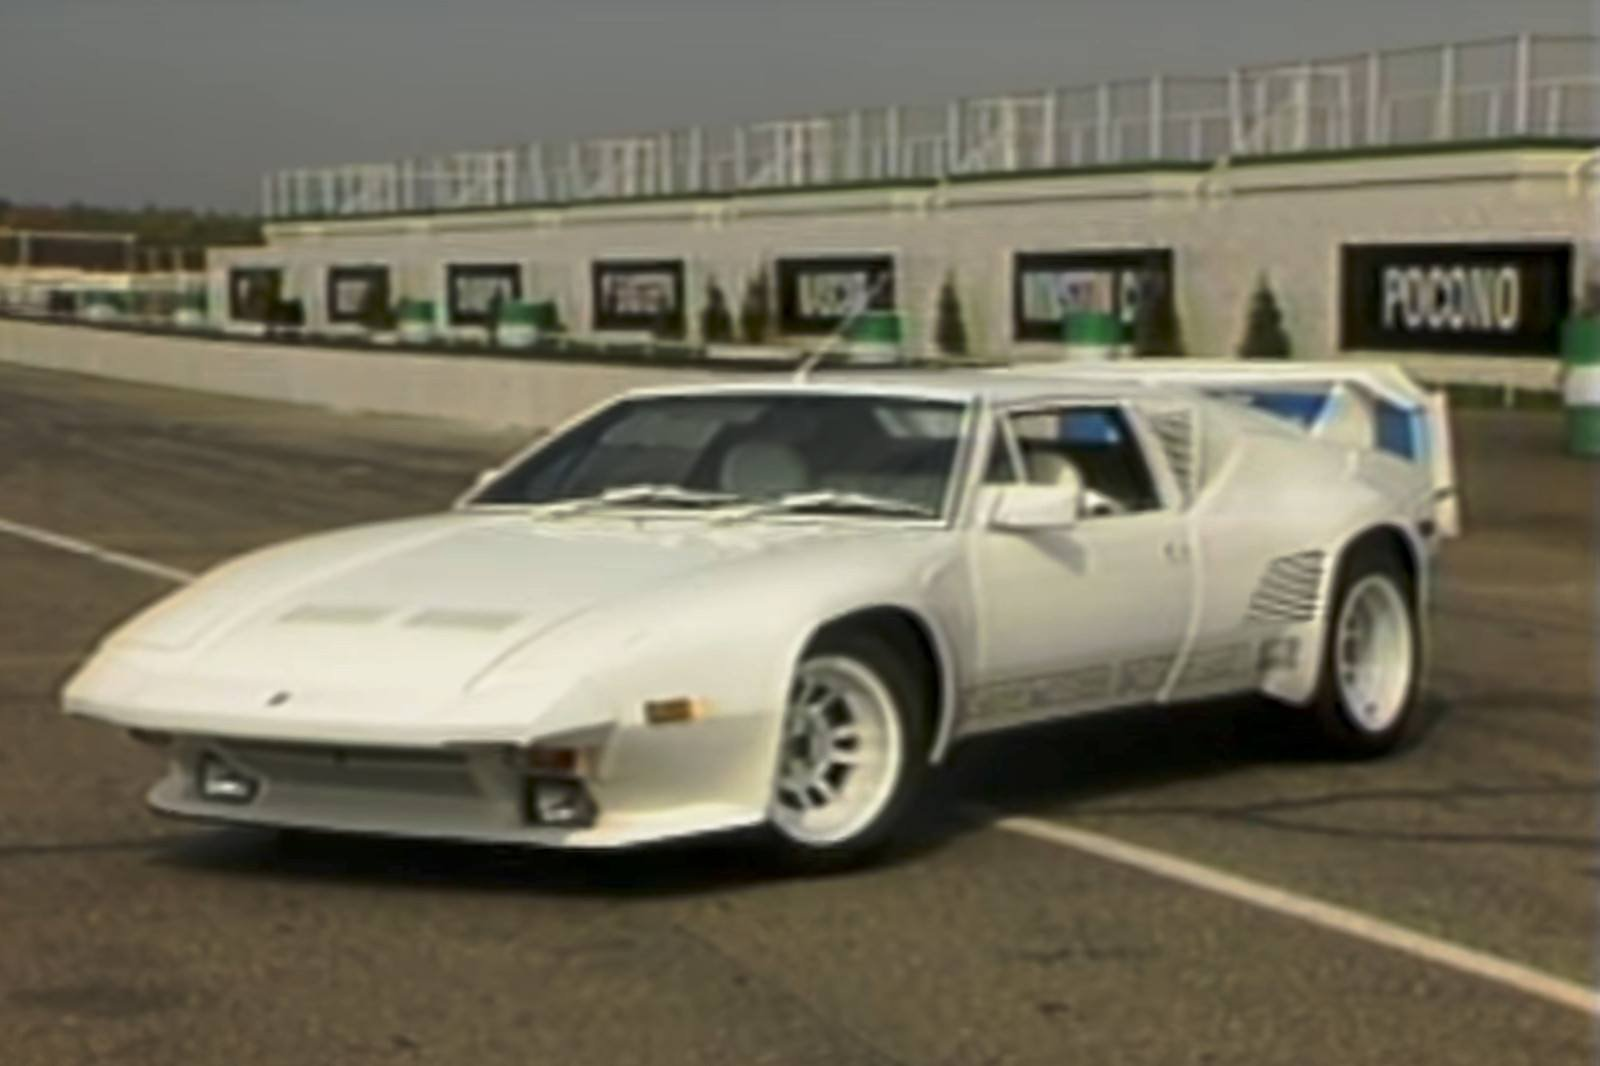 The De Tomaso Pantera Was A Ford-Powered Italian Exotic